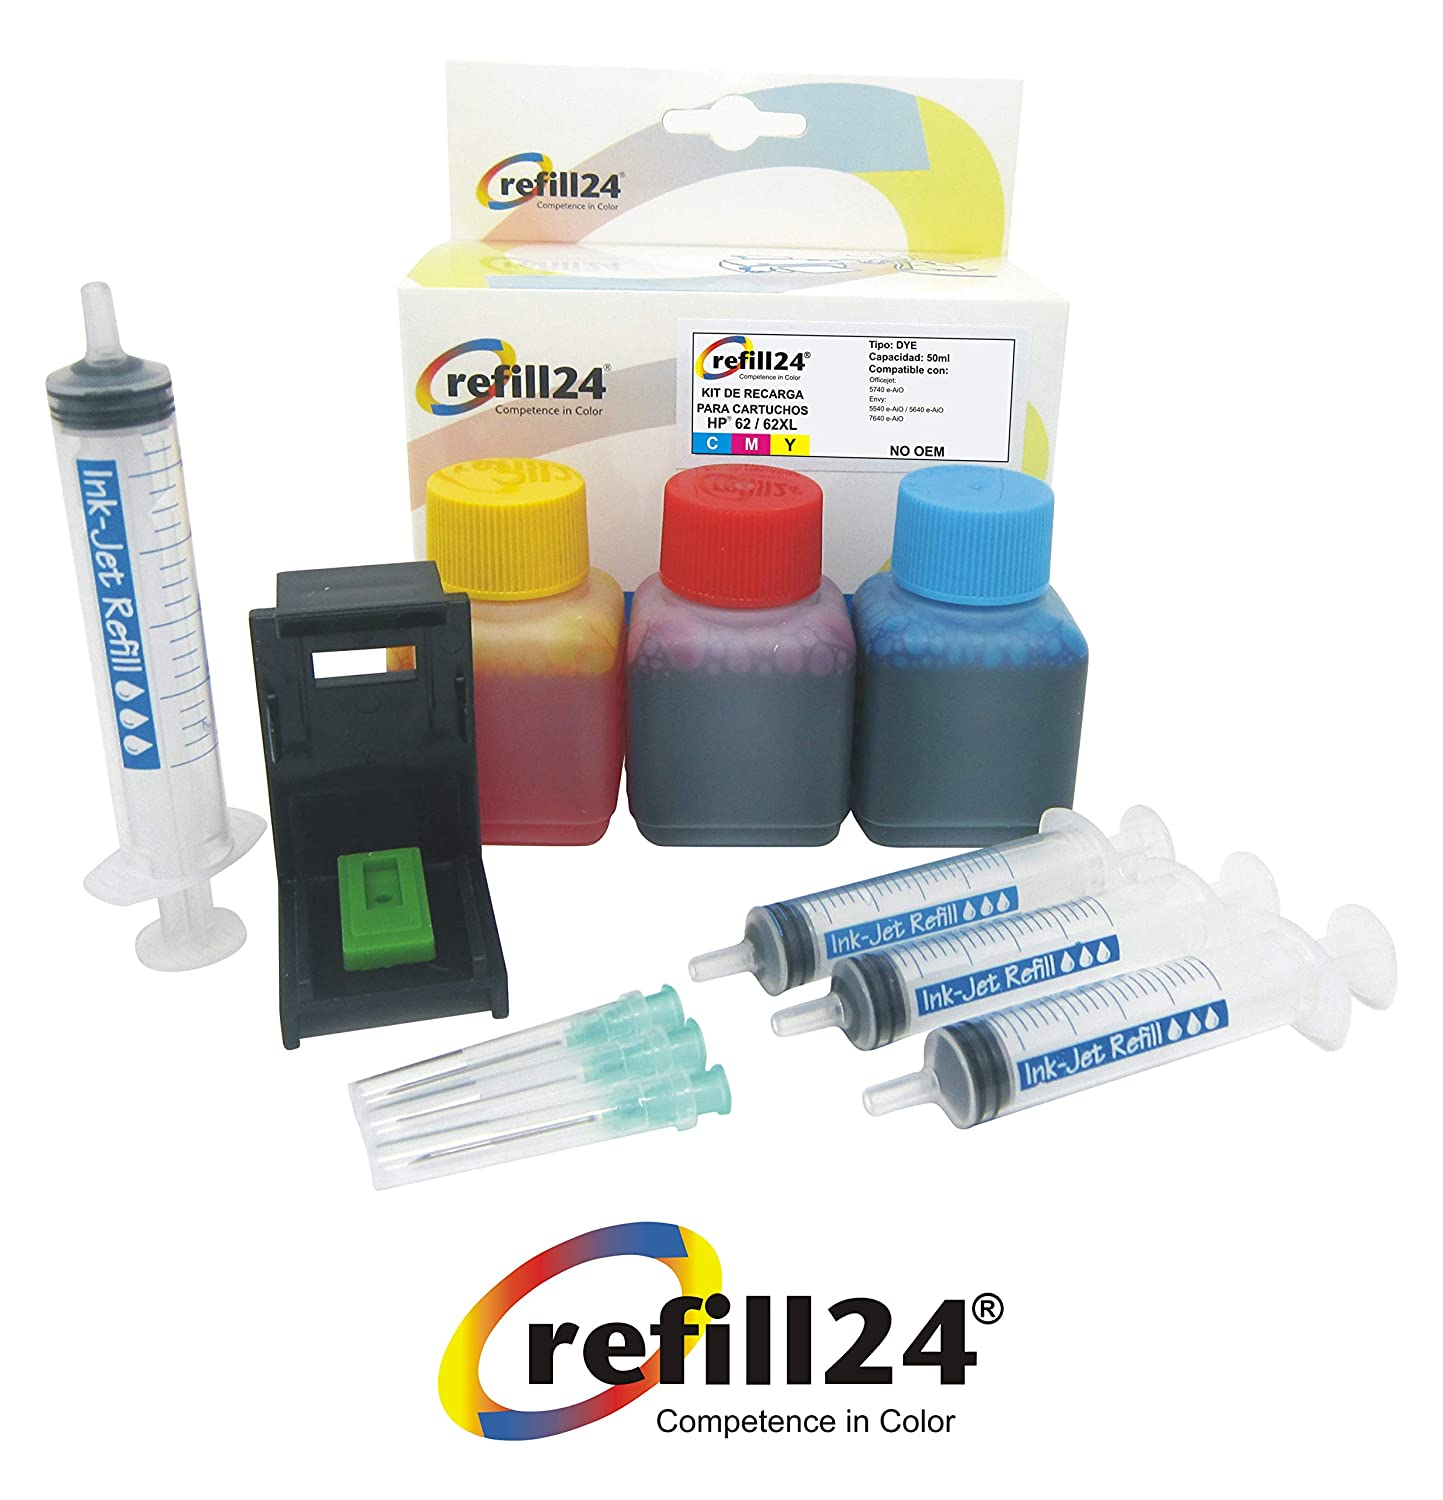 Kit de Recarga para Cartuchos de Tinta HP 62, 62 XL Color, Incluye ...